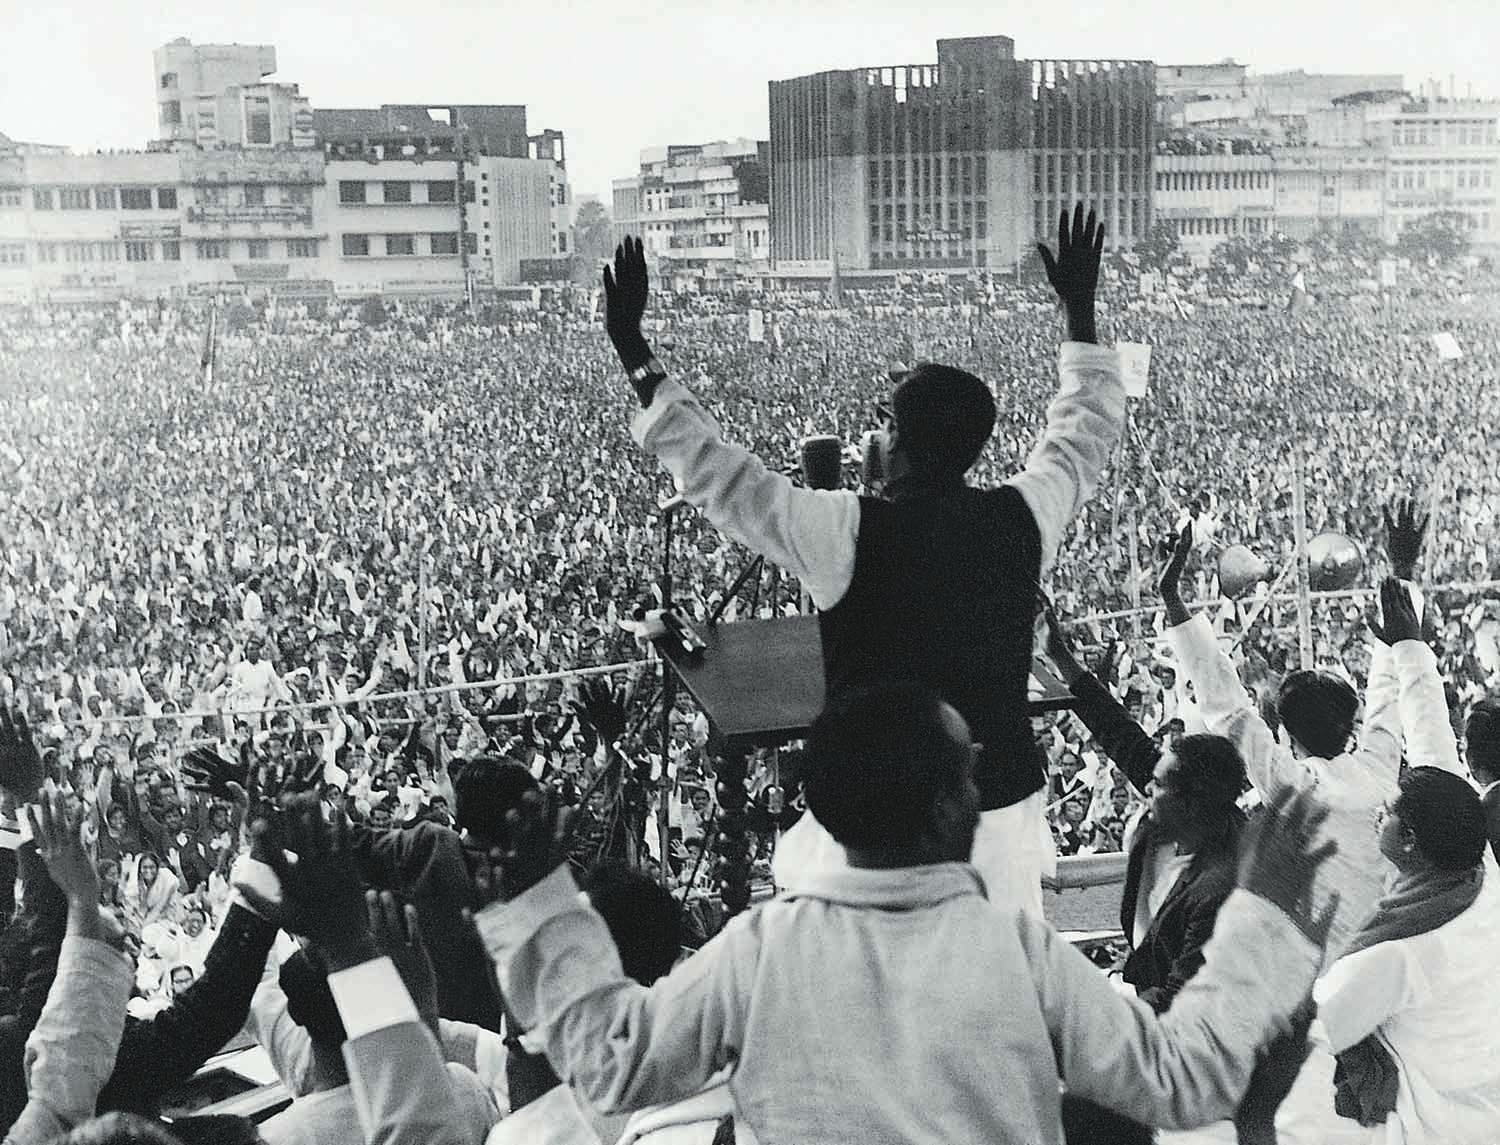 Sheikh Mujibur Rahman, chief of the Awami League, addressing a public rally in Dhaka's Paltan Maidan during his election campaign. | Photo: Dawn/White Star Archives